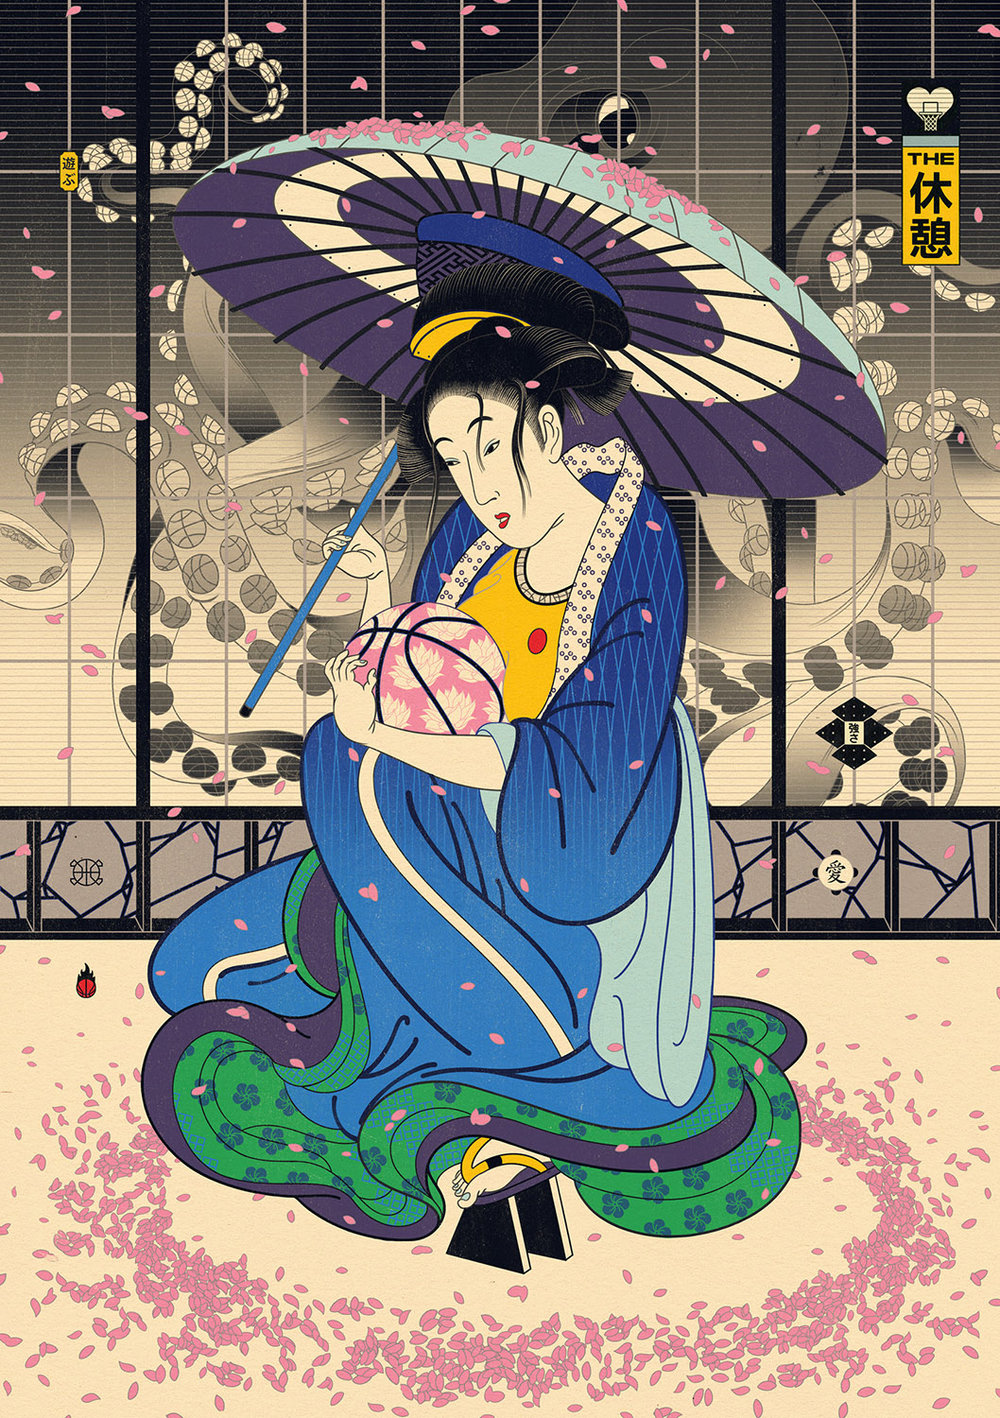 Edo Ball NBA Basketball Art - The Offseason Geisha